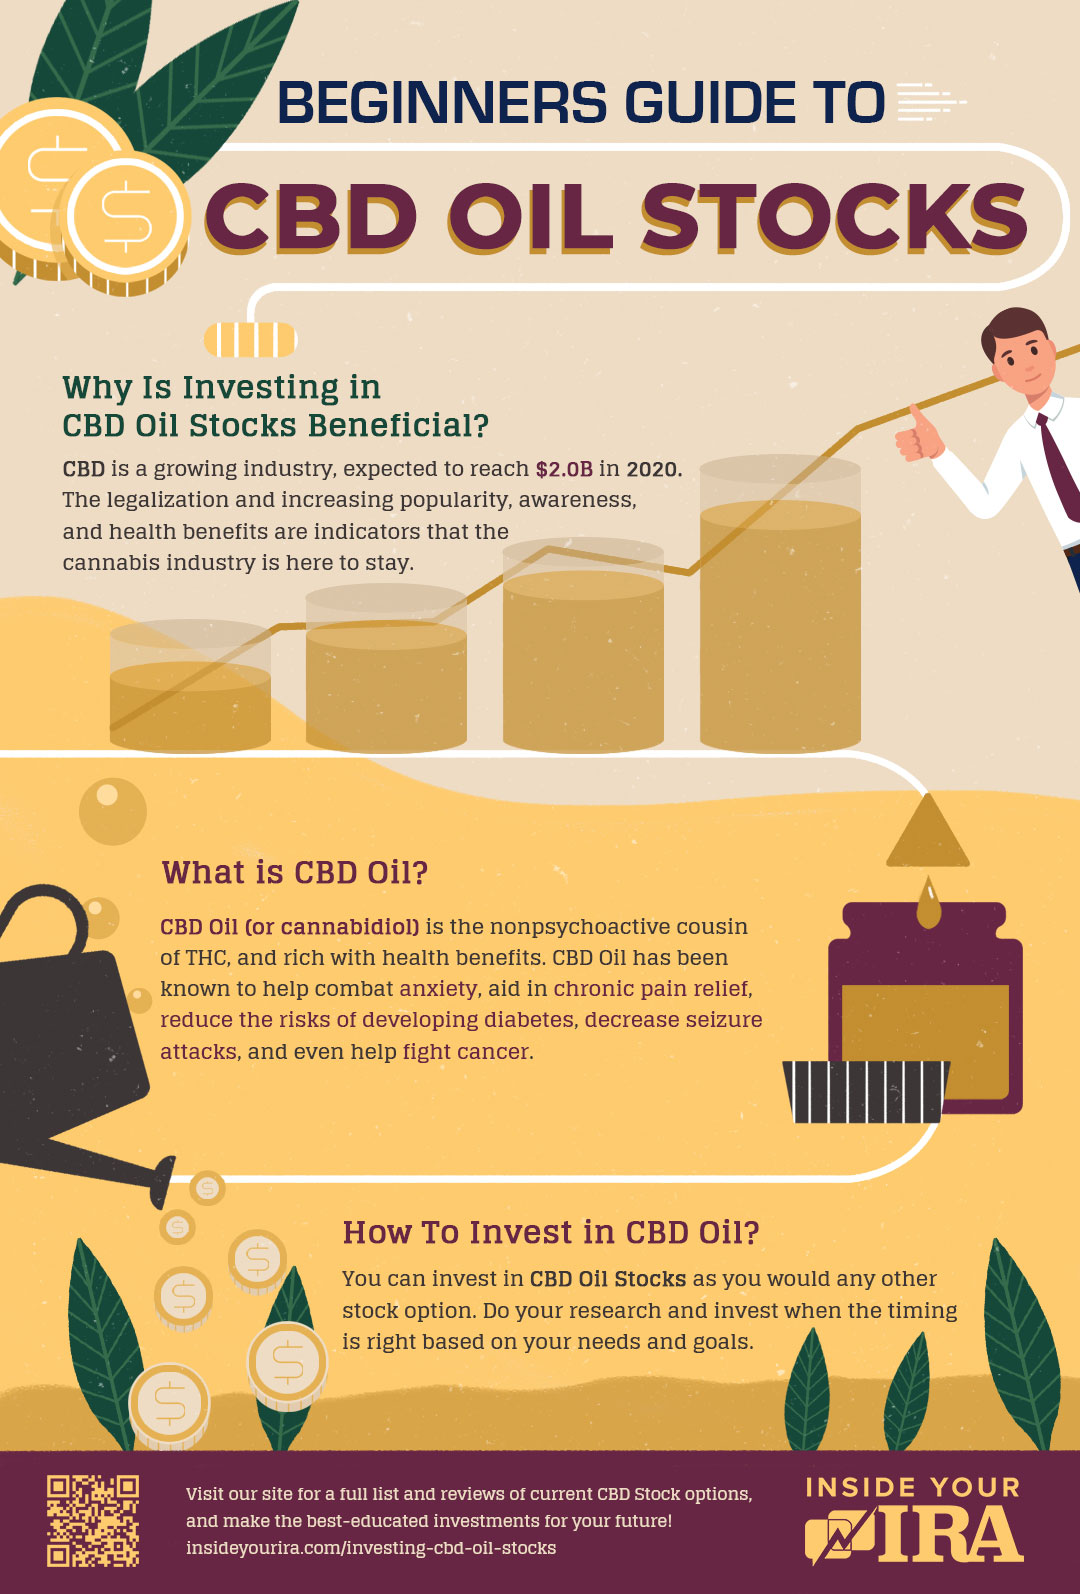 Is Investing In CBD Oil Stocks Beneficial? [INFOGRAPHIC]